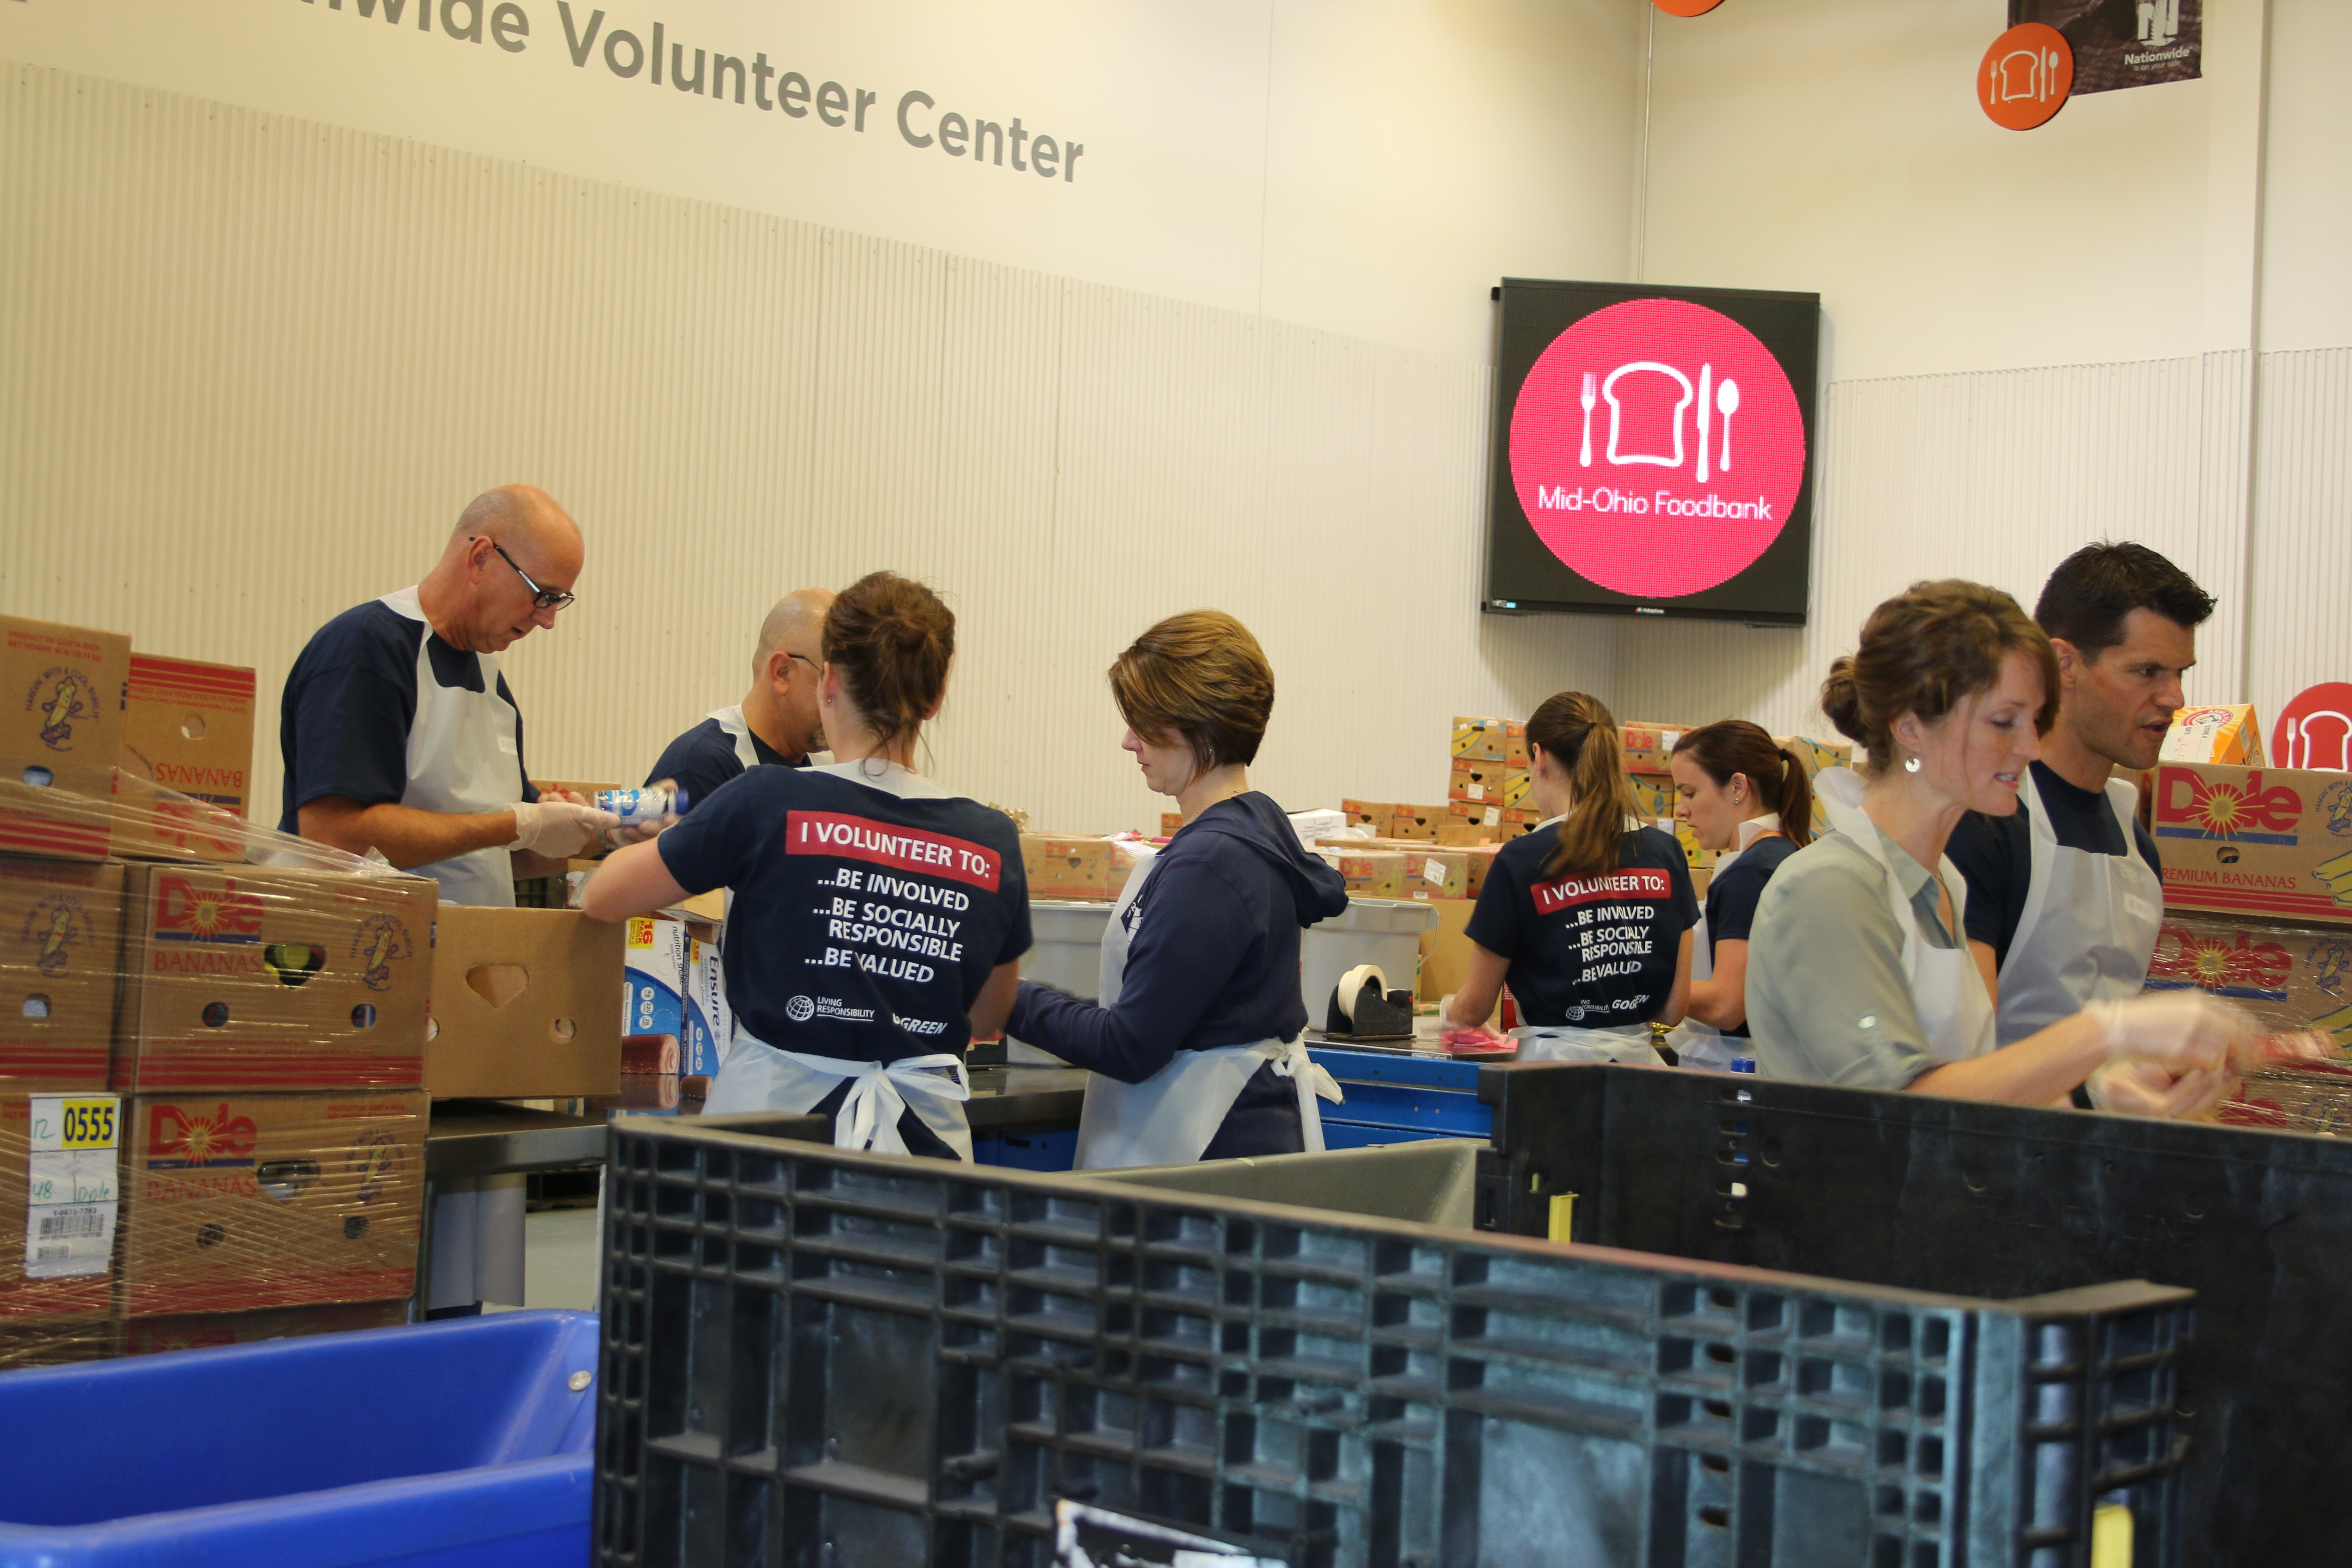 Volunteers From DHL Group Involve Themselves In Social Welfare On 'Global Volunteer Day'